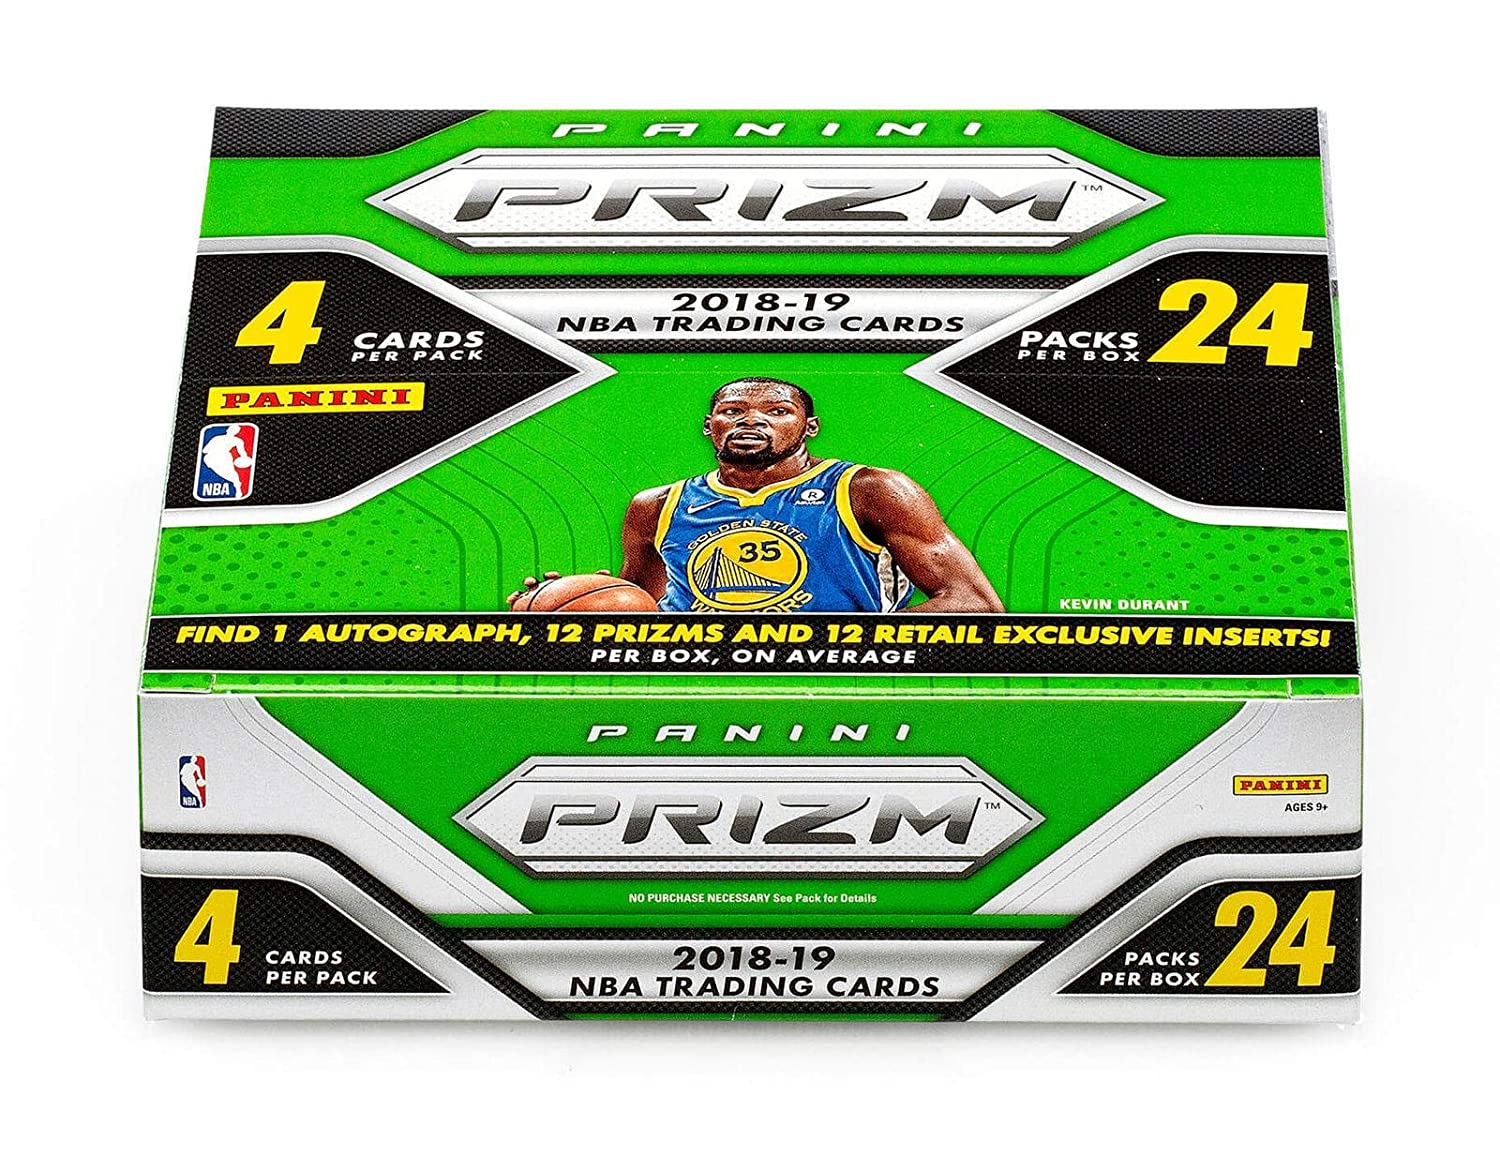 2018-19 Panini Prizm Basketball Retail Box (24 Packs/4 Cards:1 Auto, 24 inserts) - Panini Certified - Autographed Basketballs Sports Memorabilia